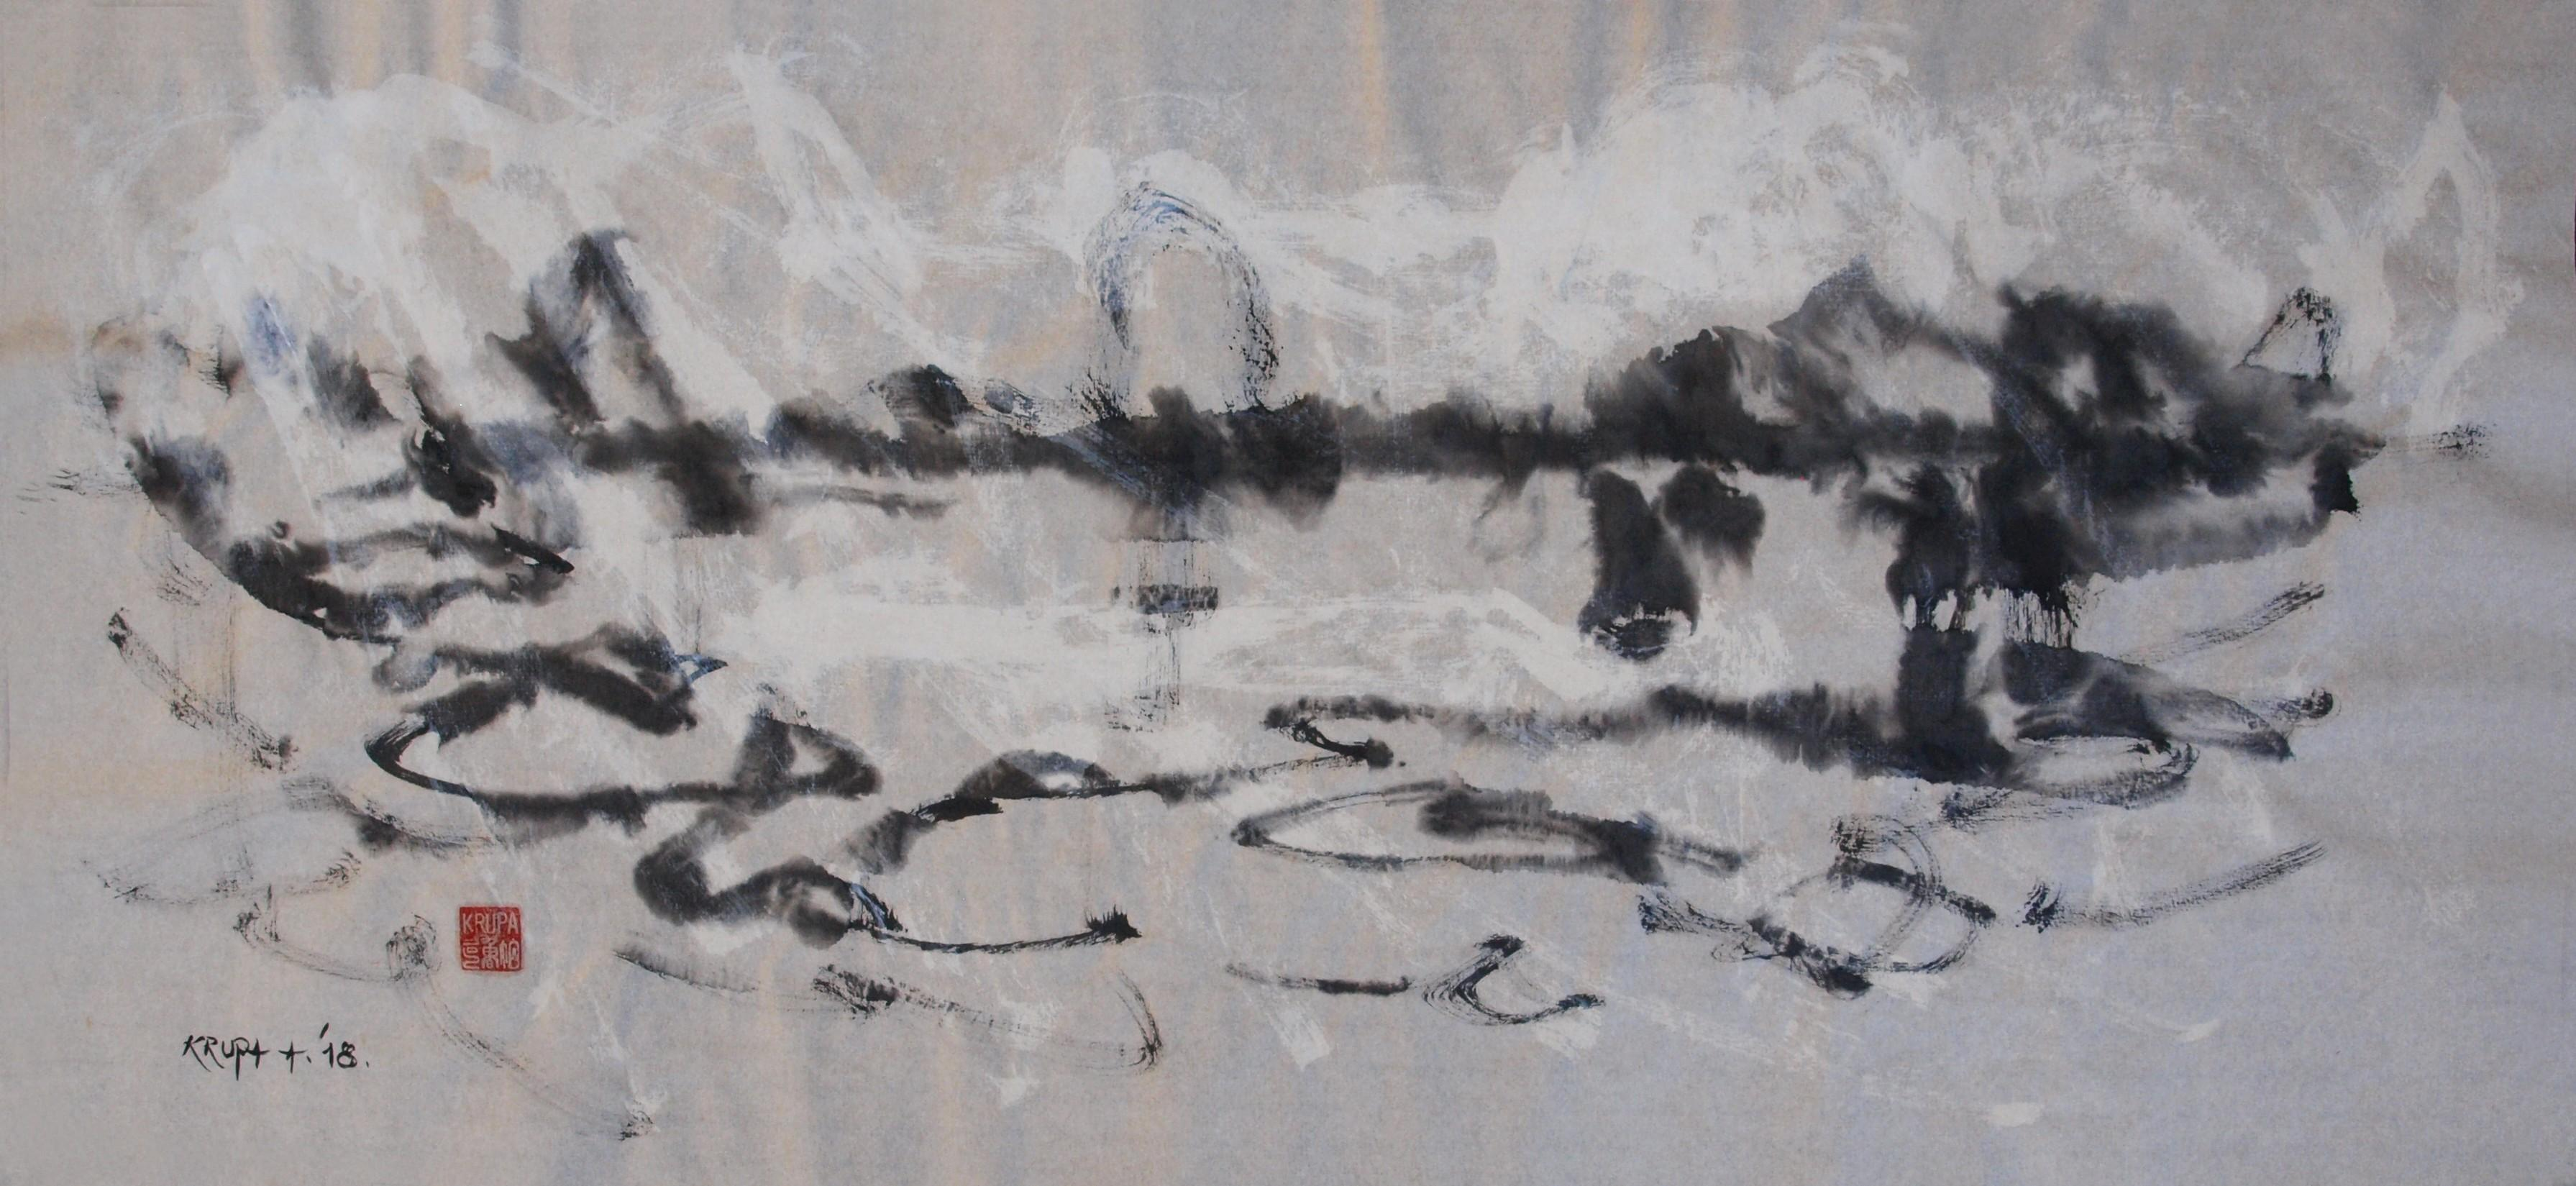 A Rainy Day, Abstract Art Ink Painting Paper Expressionist Calligraphy Landscape